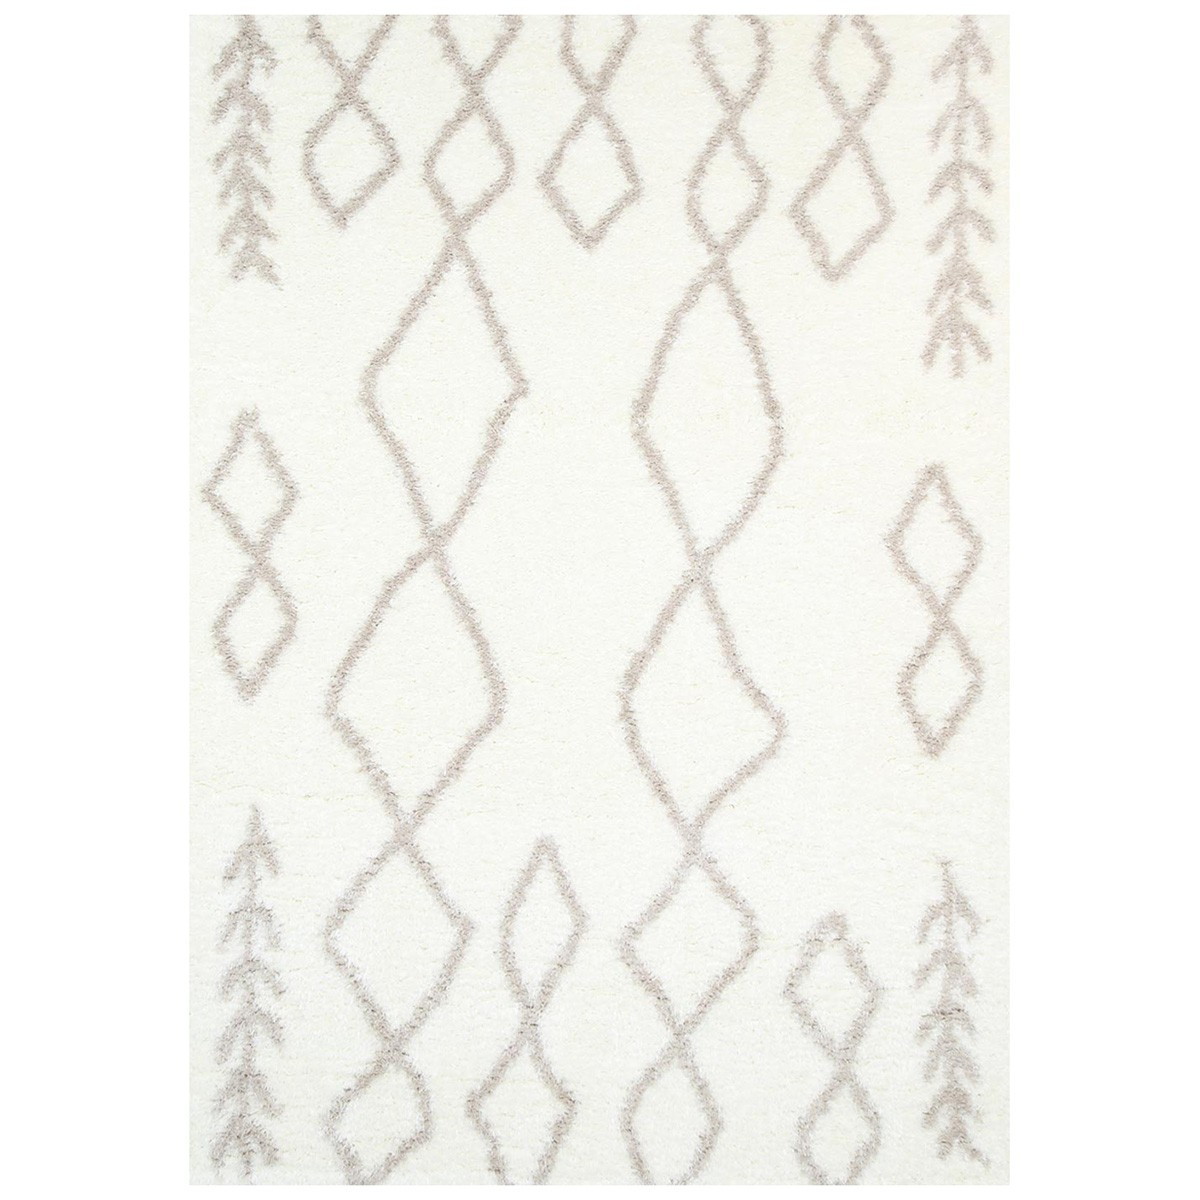 Moroccan Tribal Super Soft Shaggy Rug, 160x230cm, Cream/Beige